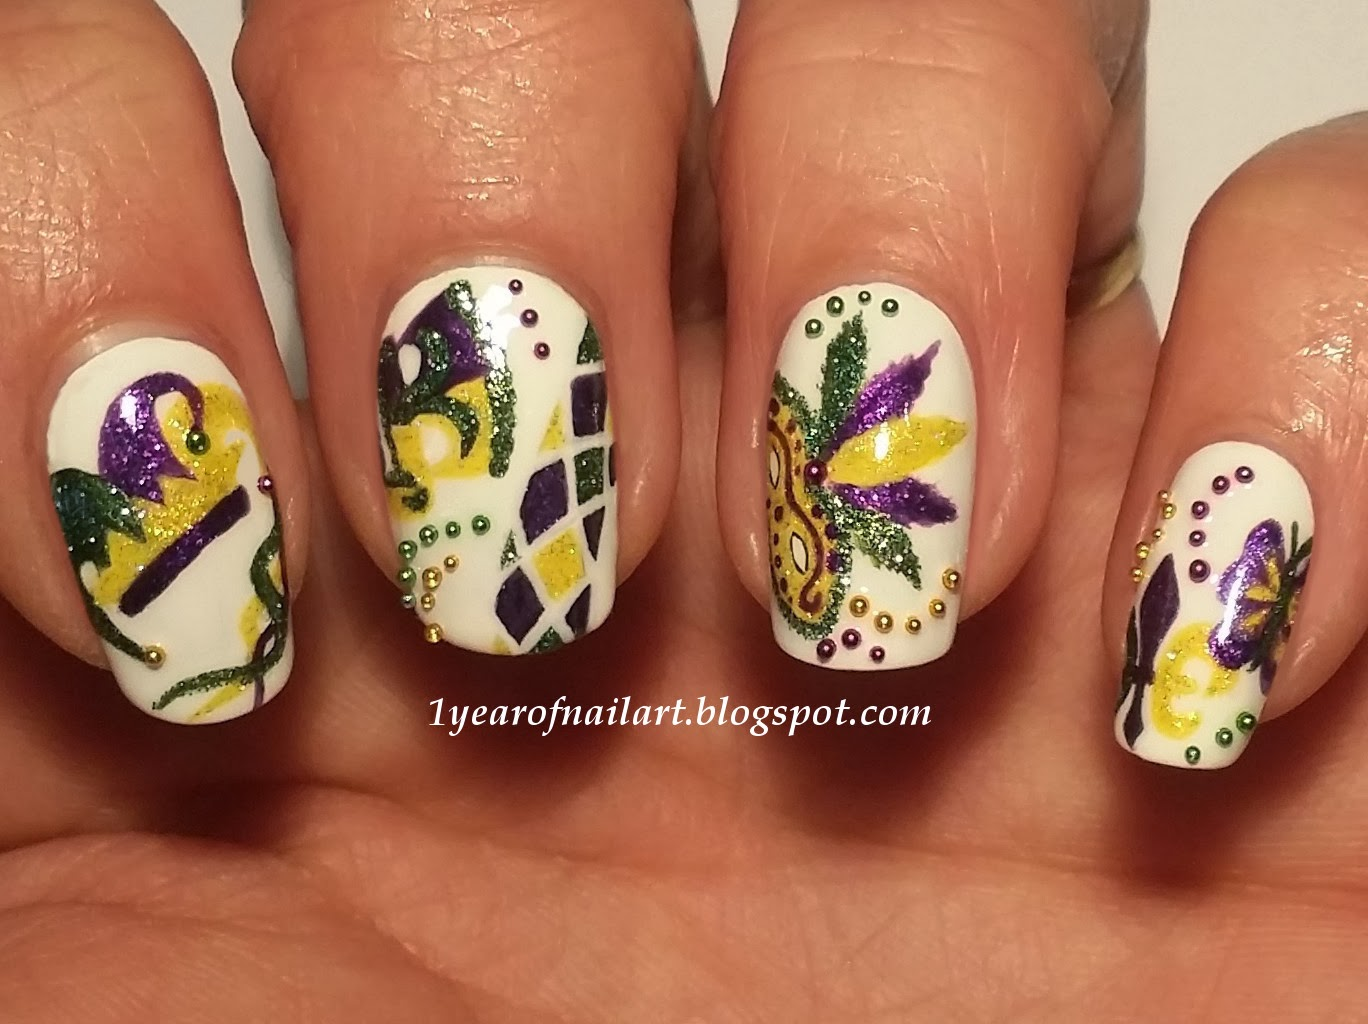 365+ days of nail art: Mardi Gras/Carnival nails